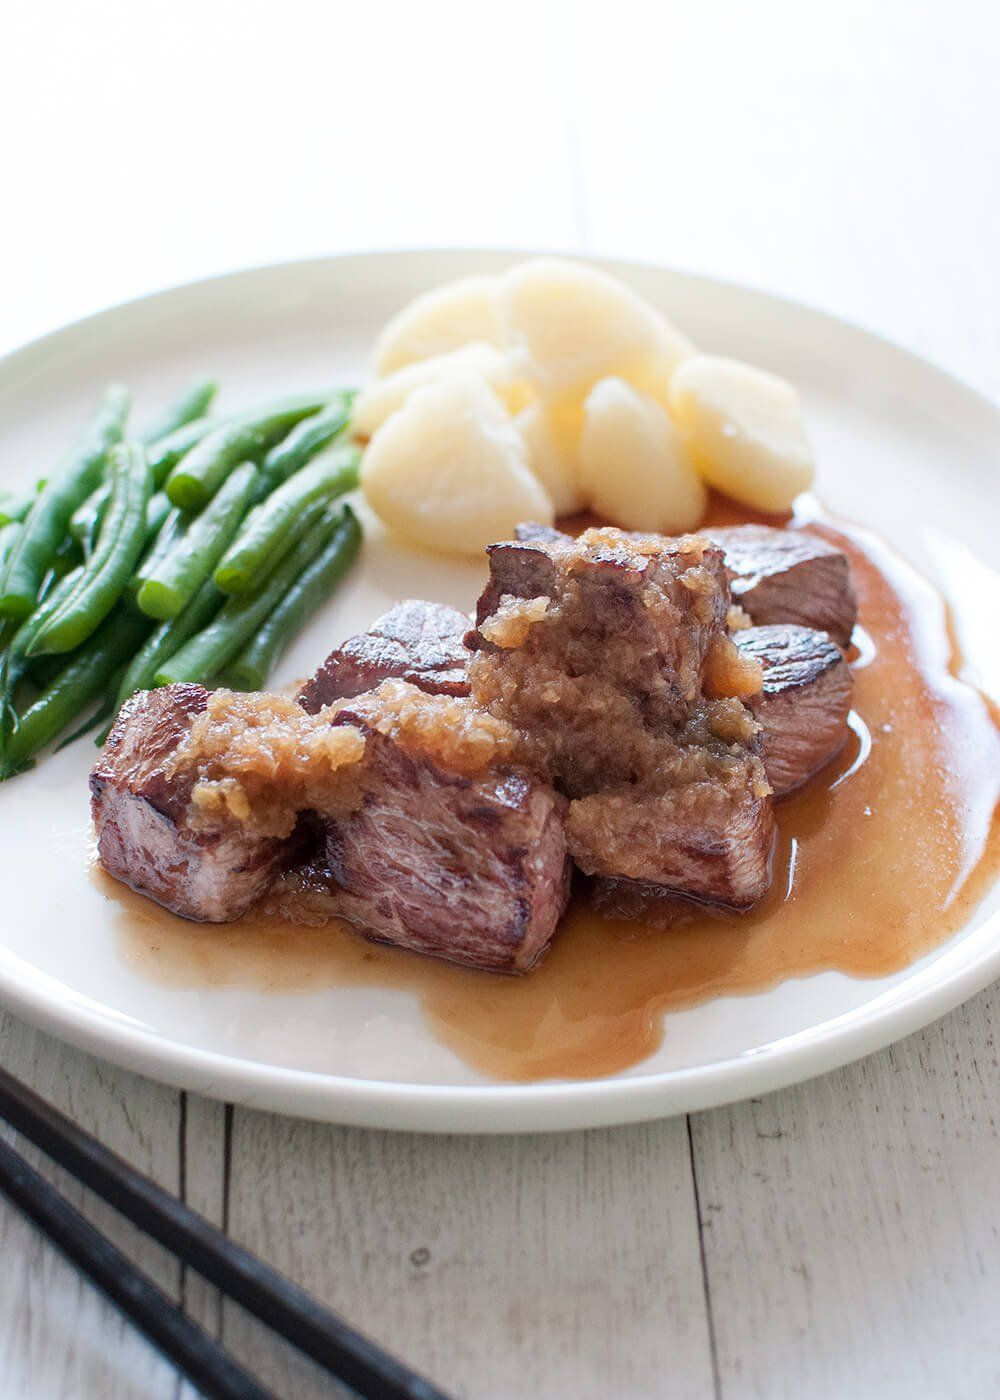 Diced Beef Steak Saikoro Steak With Japanese Style Sauces Recipetin Japan Recipe Cubed Beef Recipes Diced Beef Recipes Beef Recipes